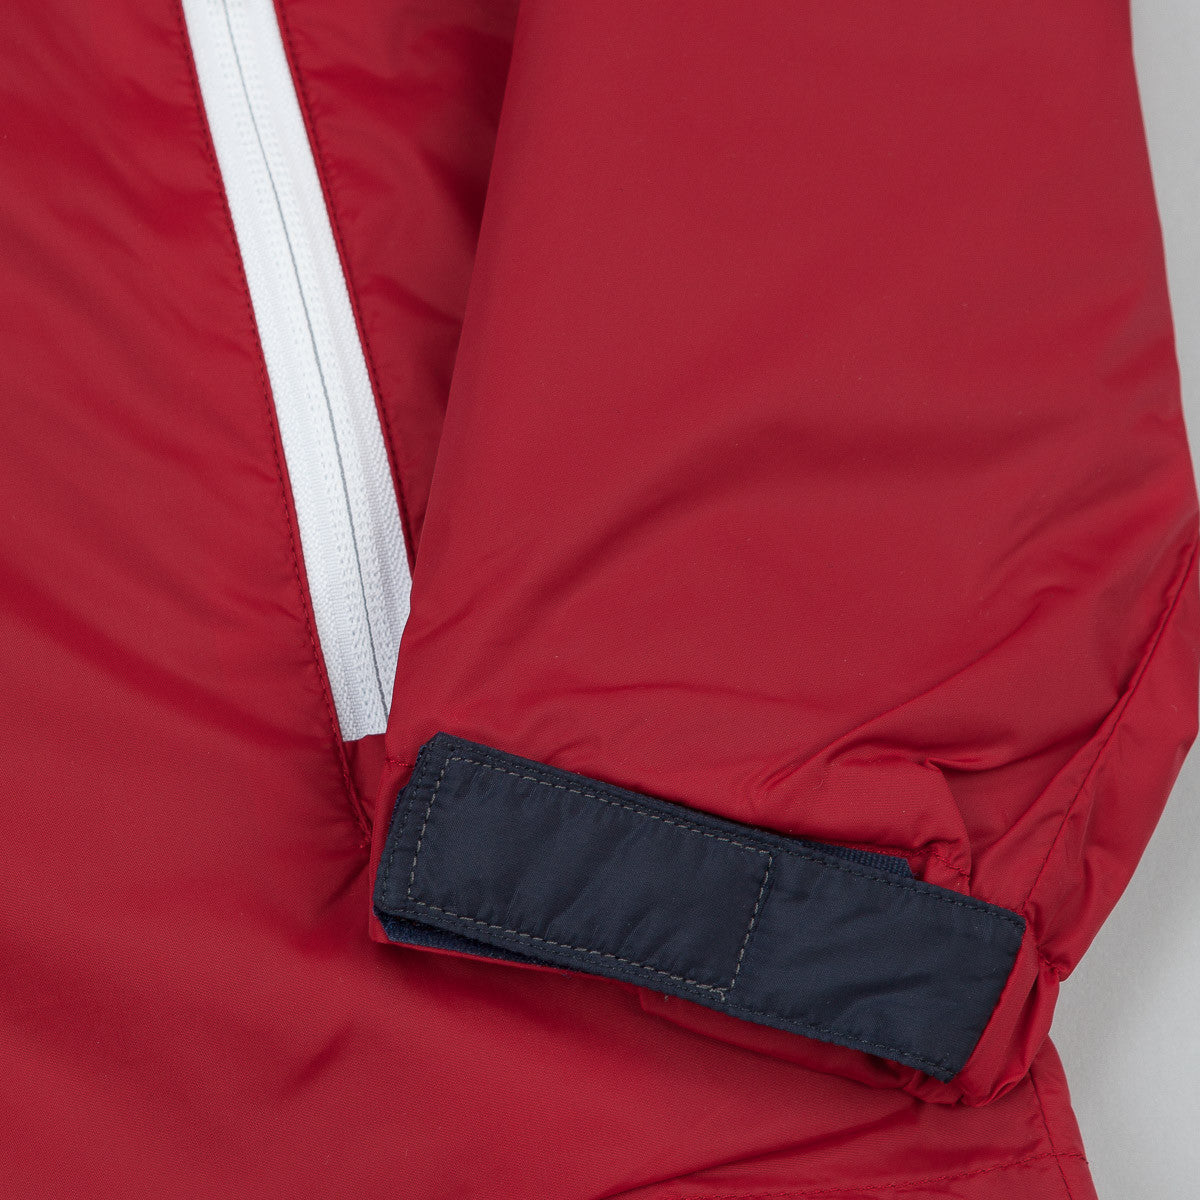 The Quiet Life Trail Windbreaker Jacket - Red / Navy